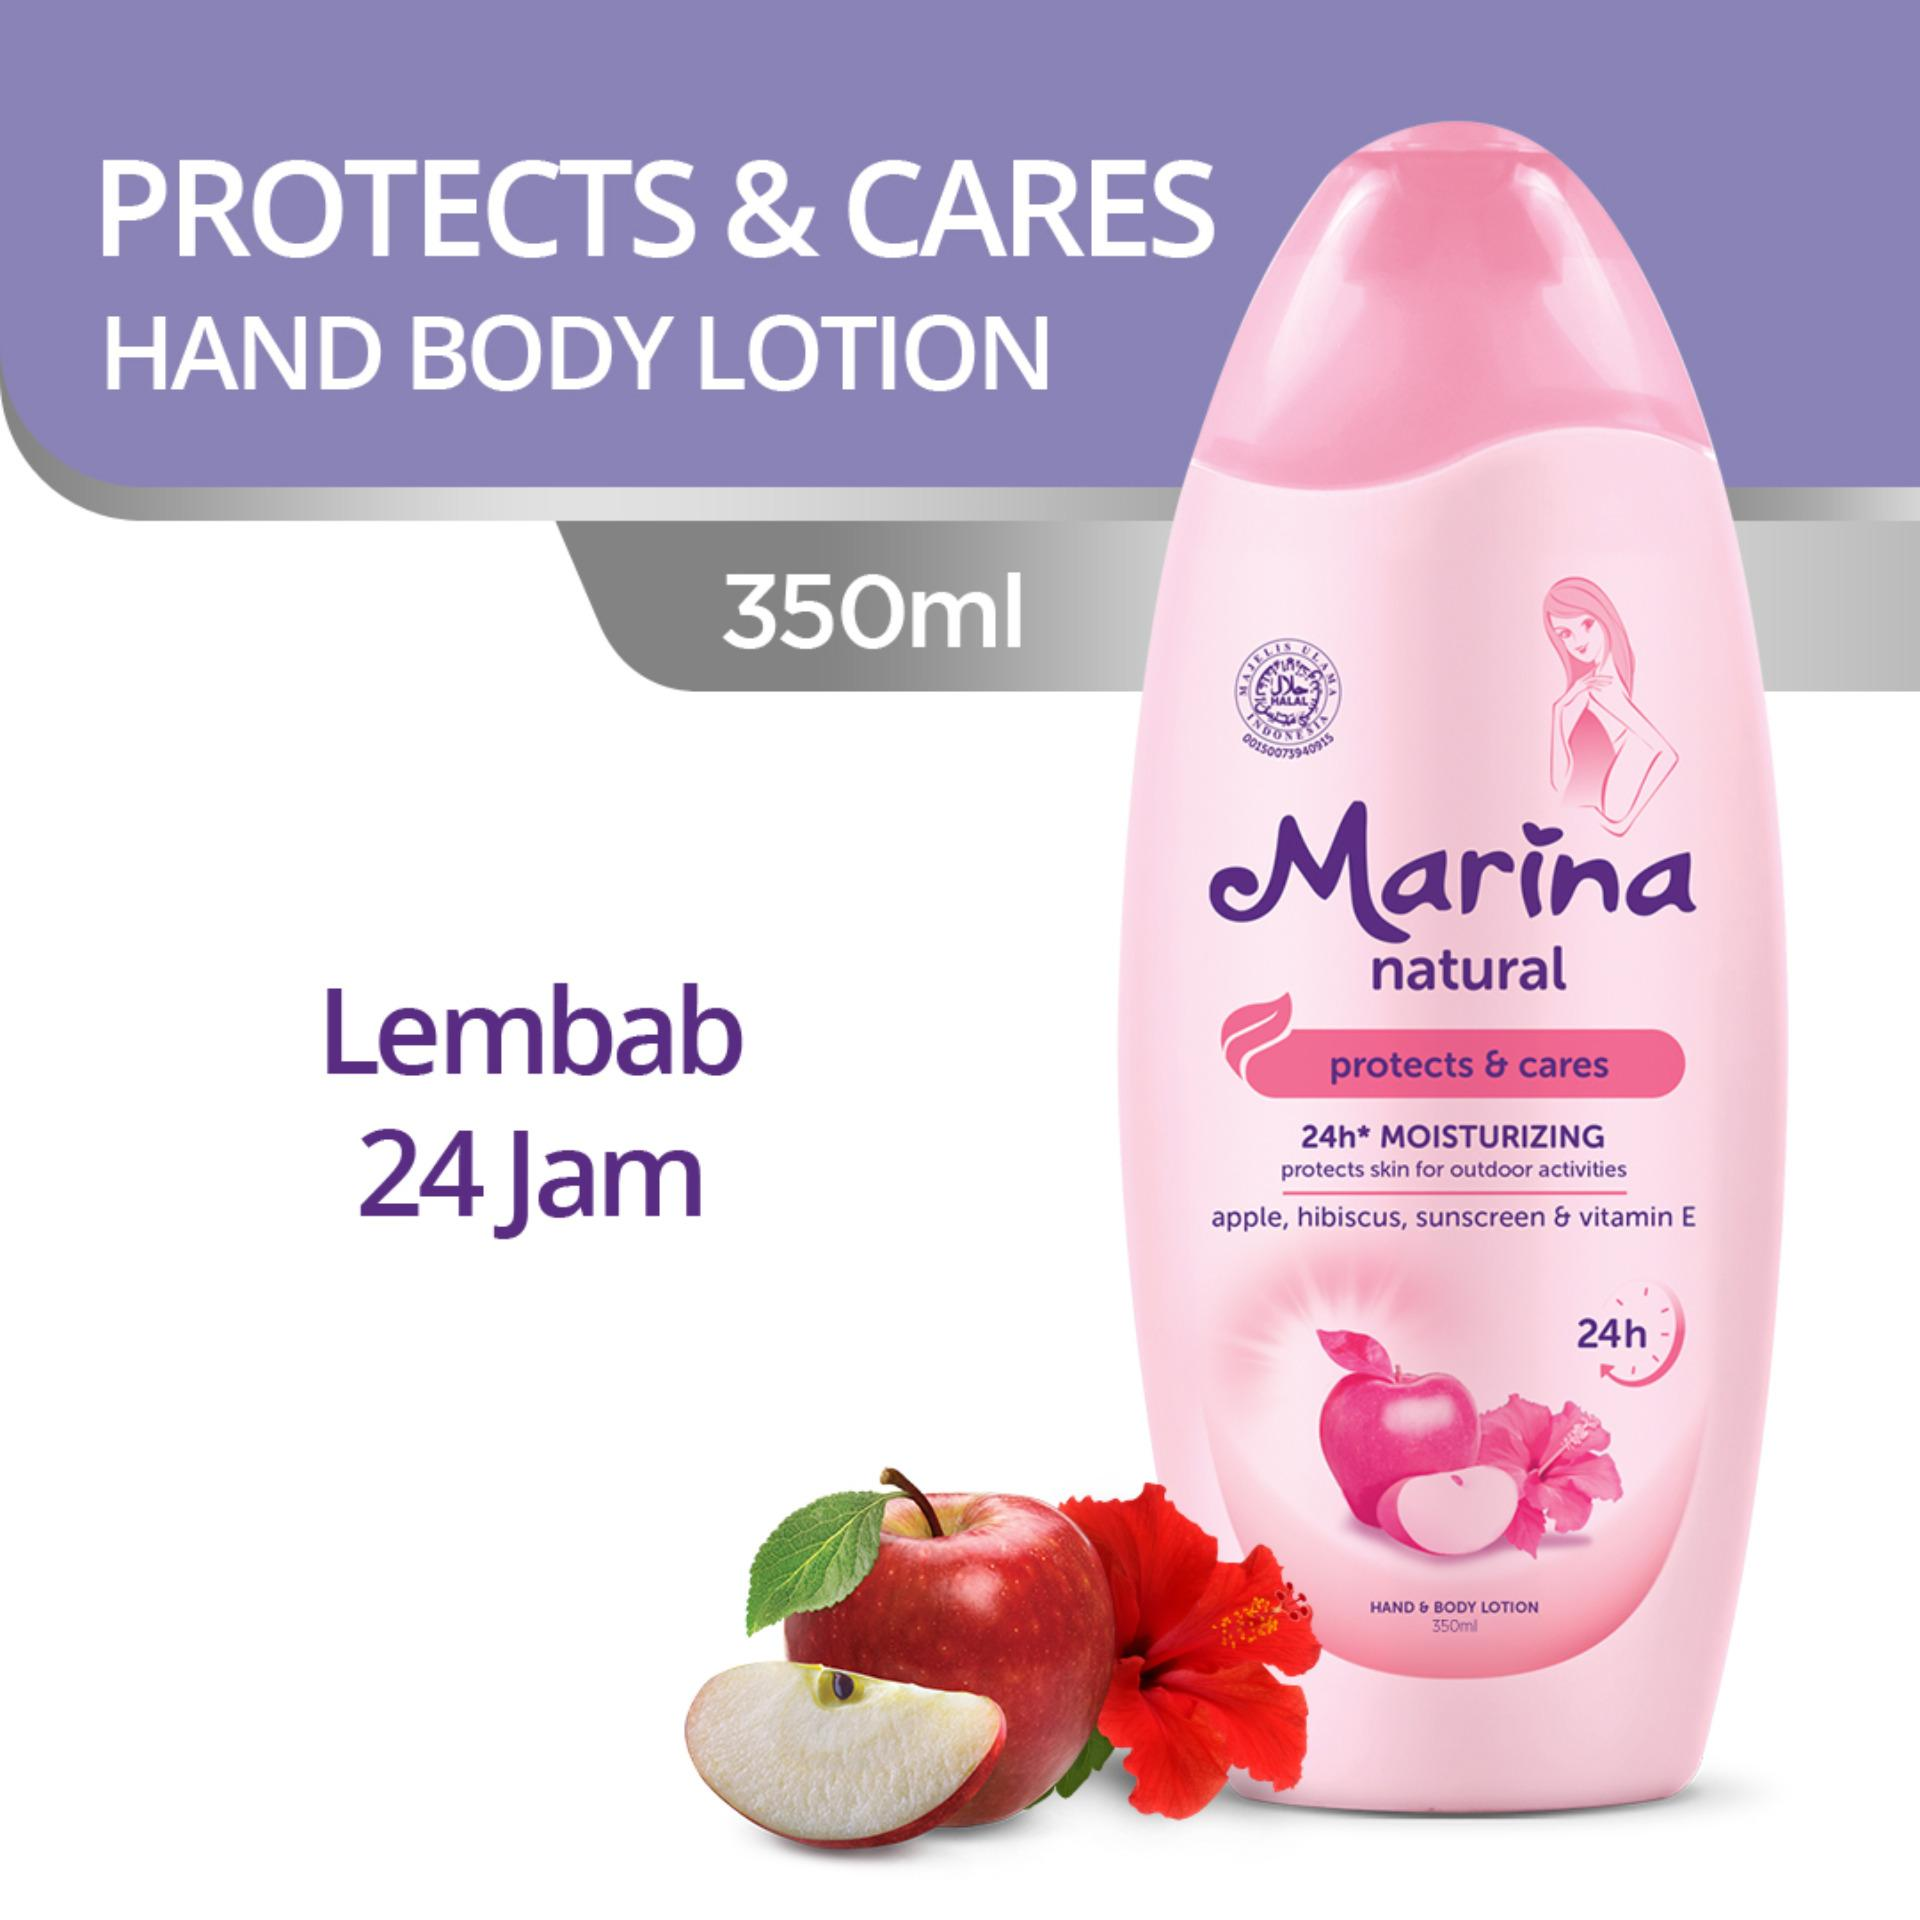 Marina Hand & Body Lotion Natural Protects & Cares 350 ml